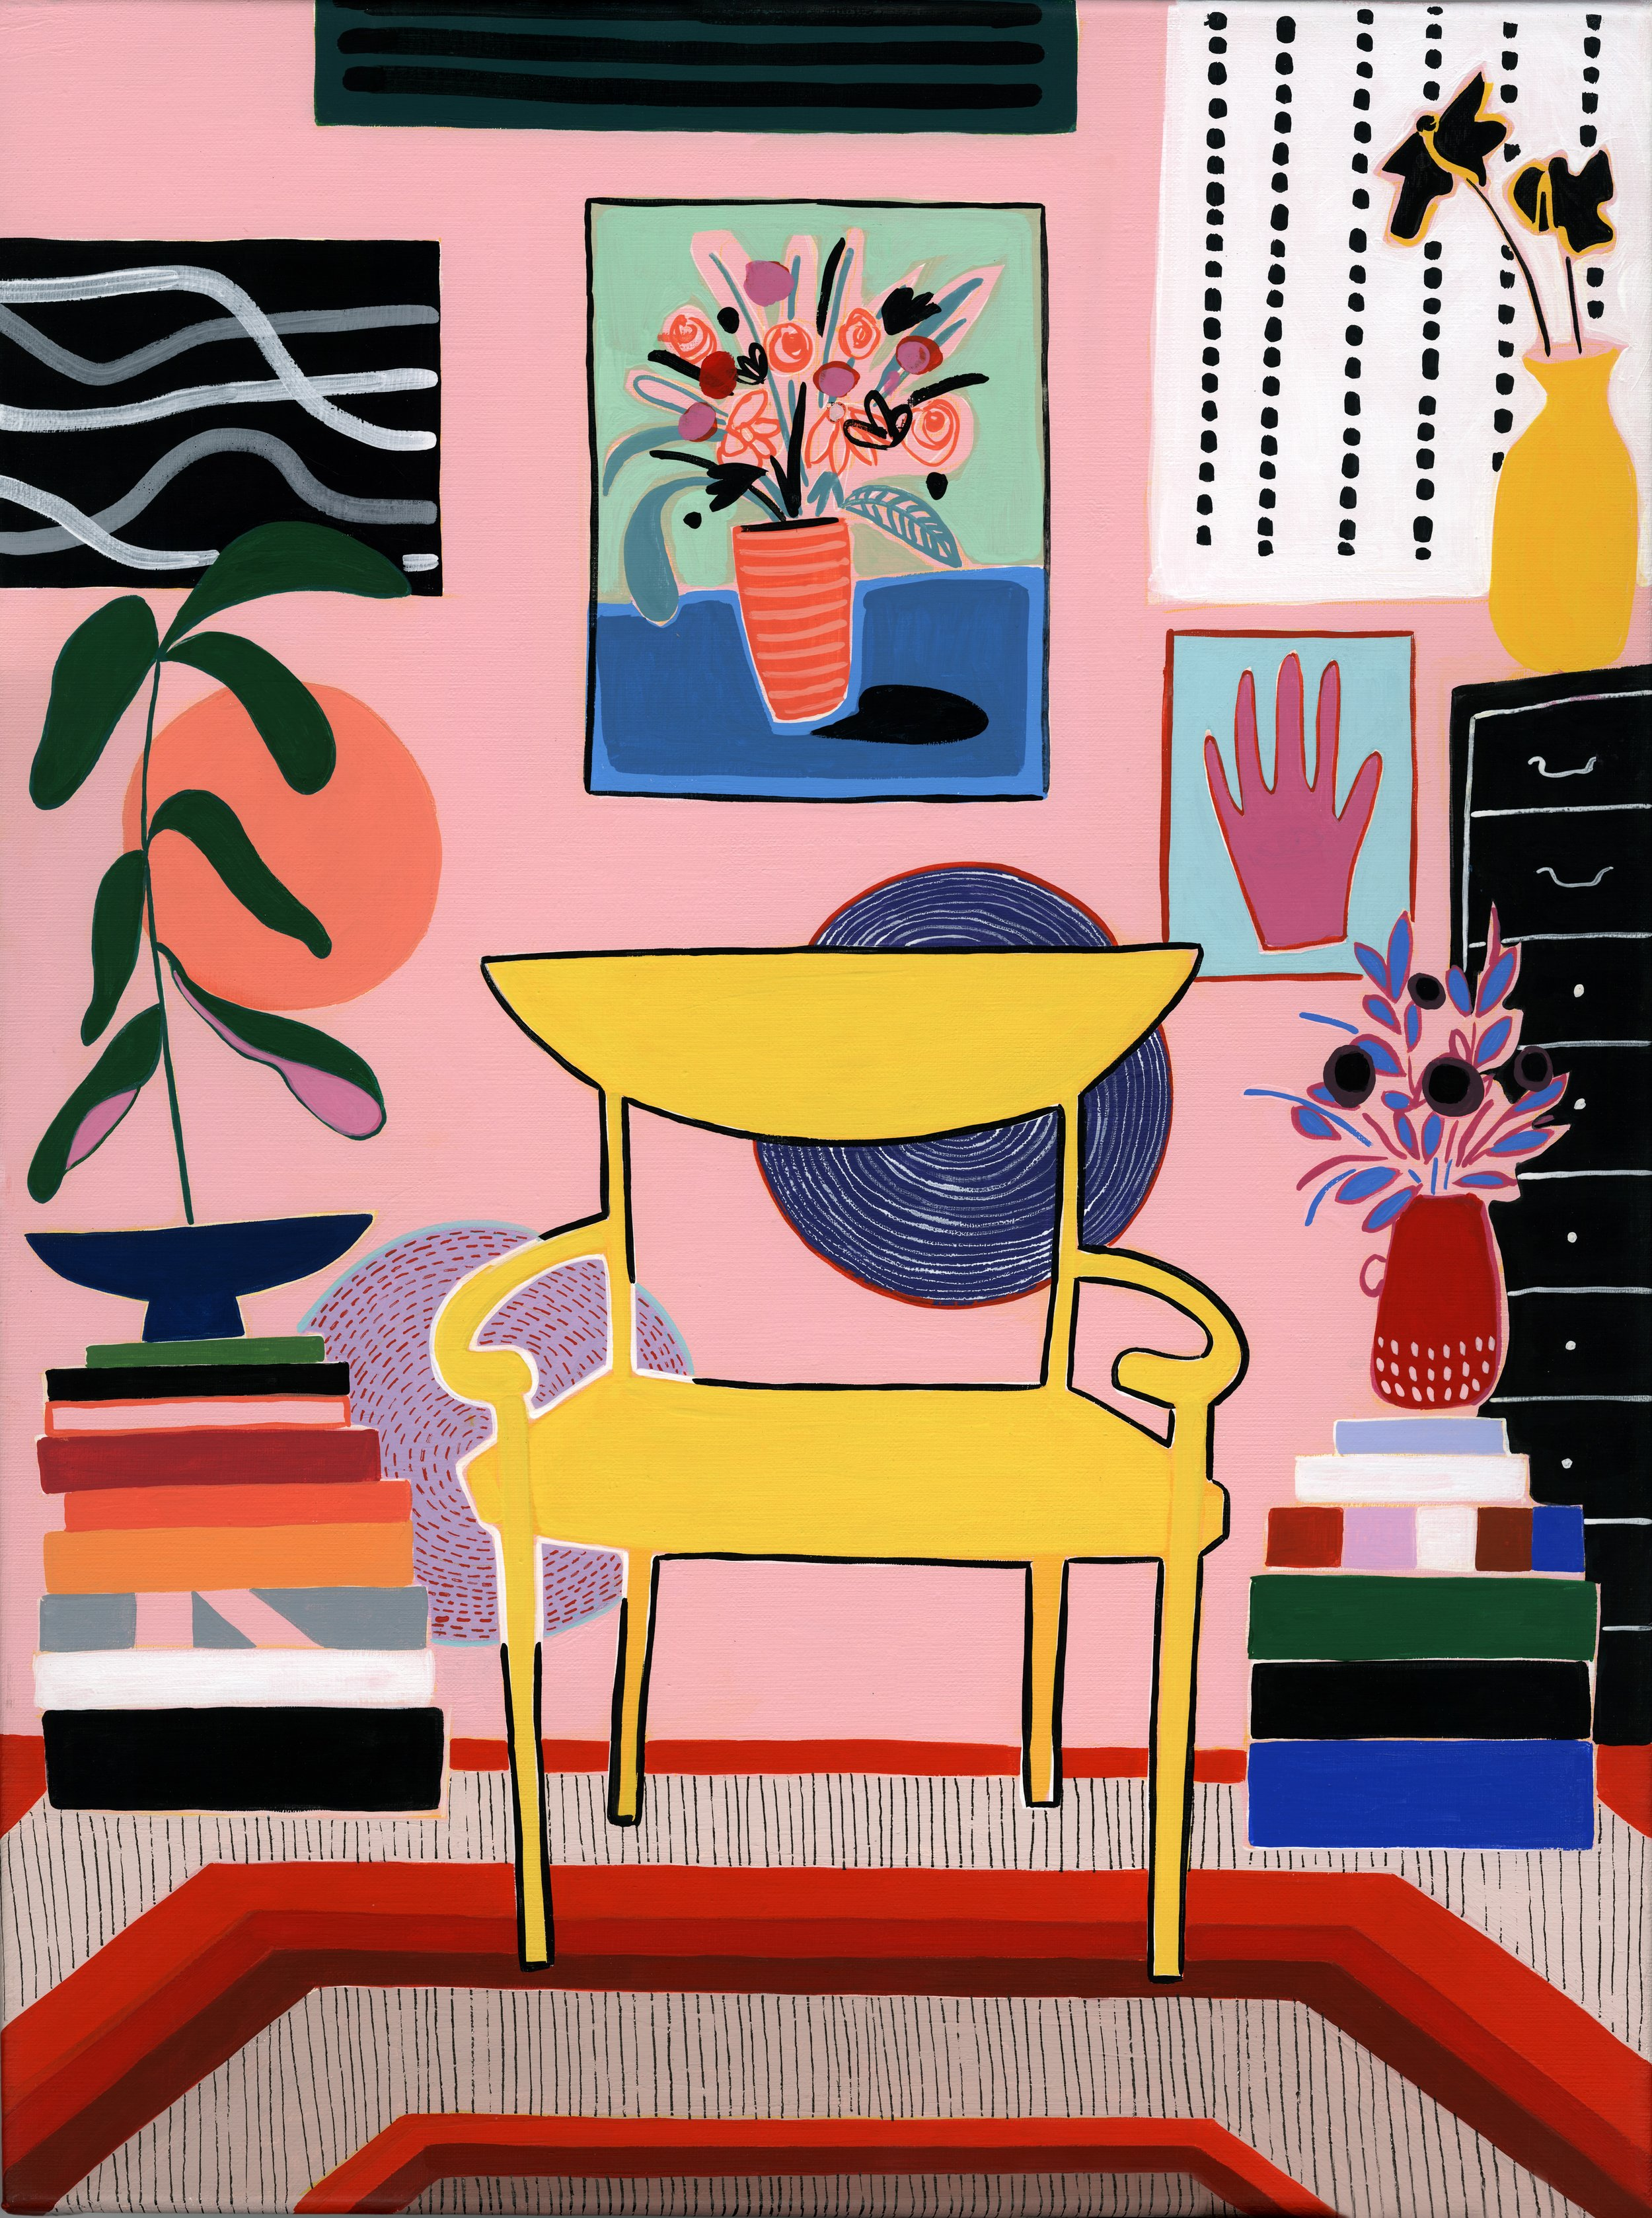 Mary Finlayson - Yellow Chair - Canvas Print with Maple Frame - 26.5x36- 1 of 1 - 2018 - $760.jpg